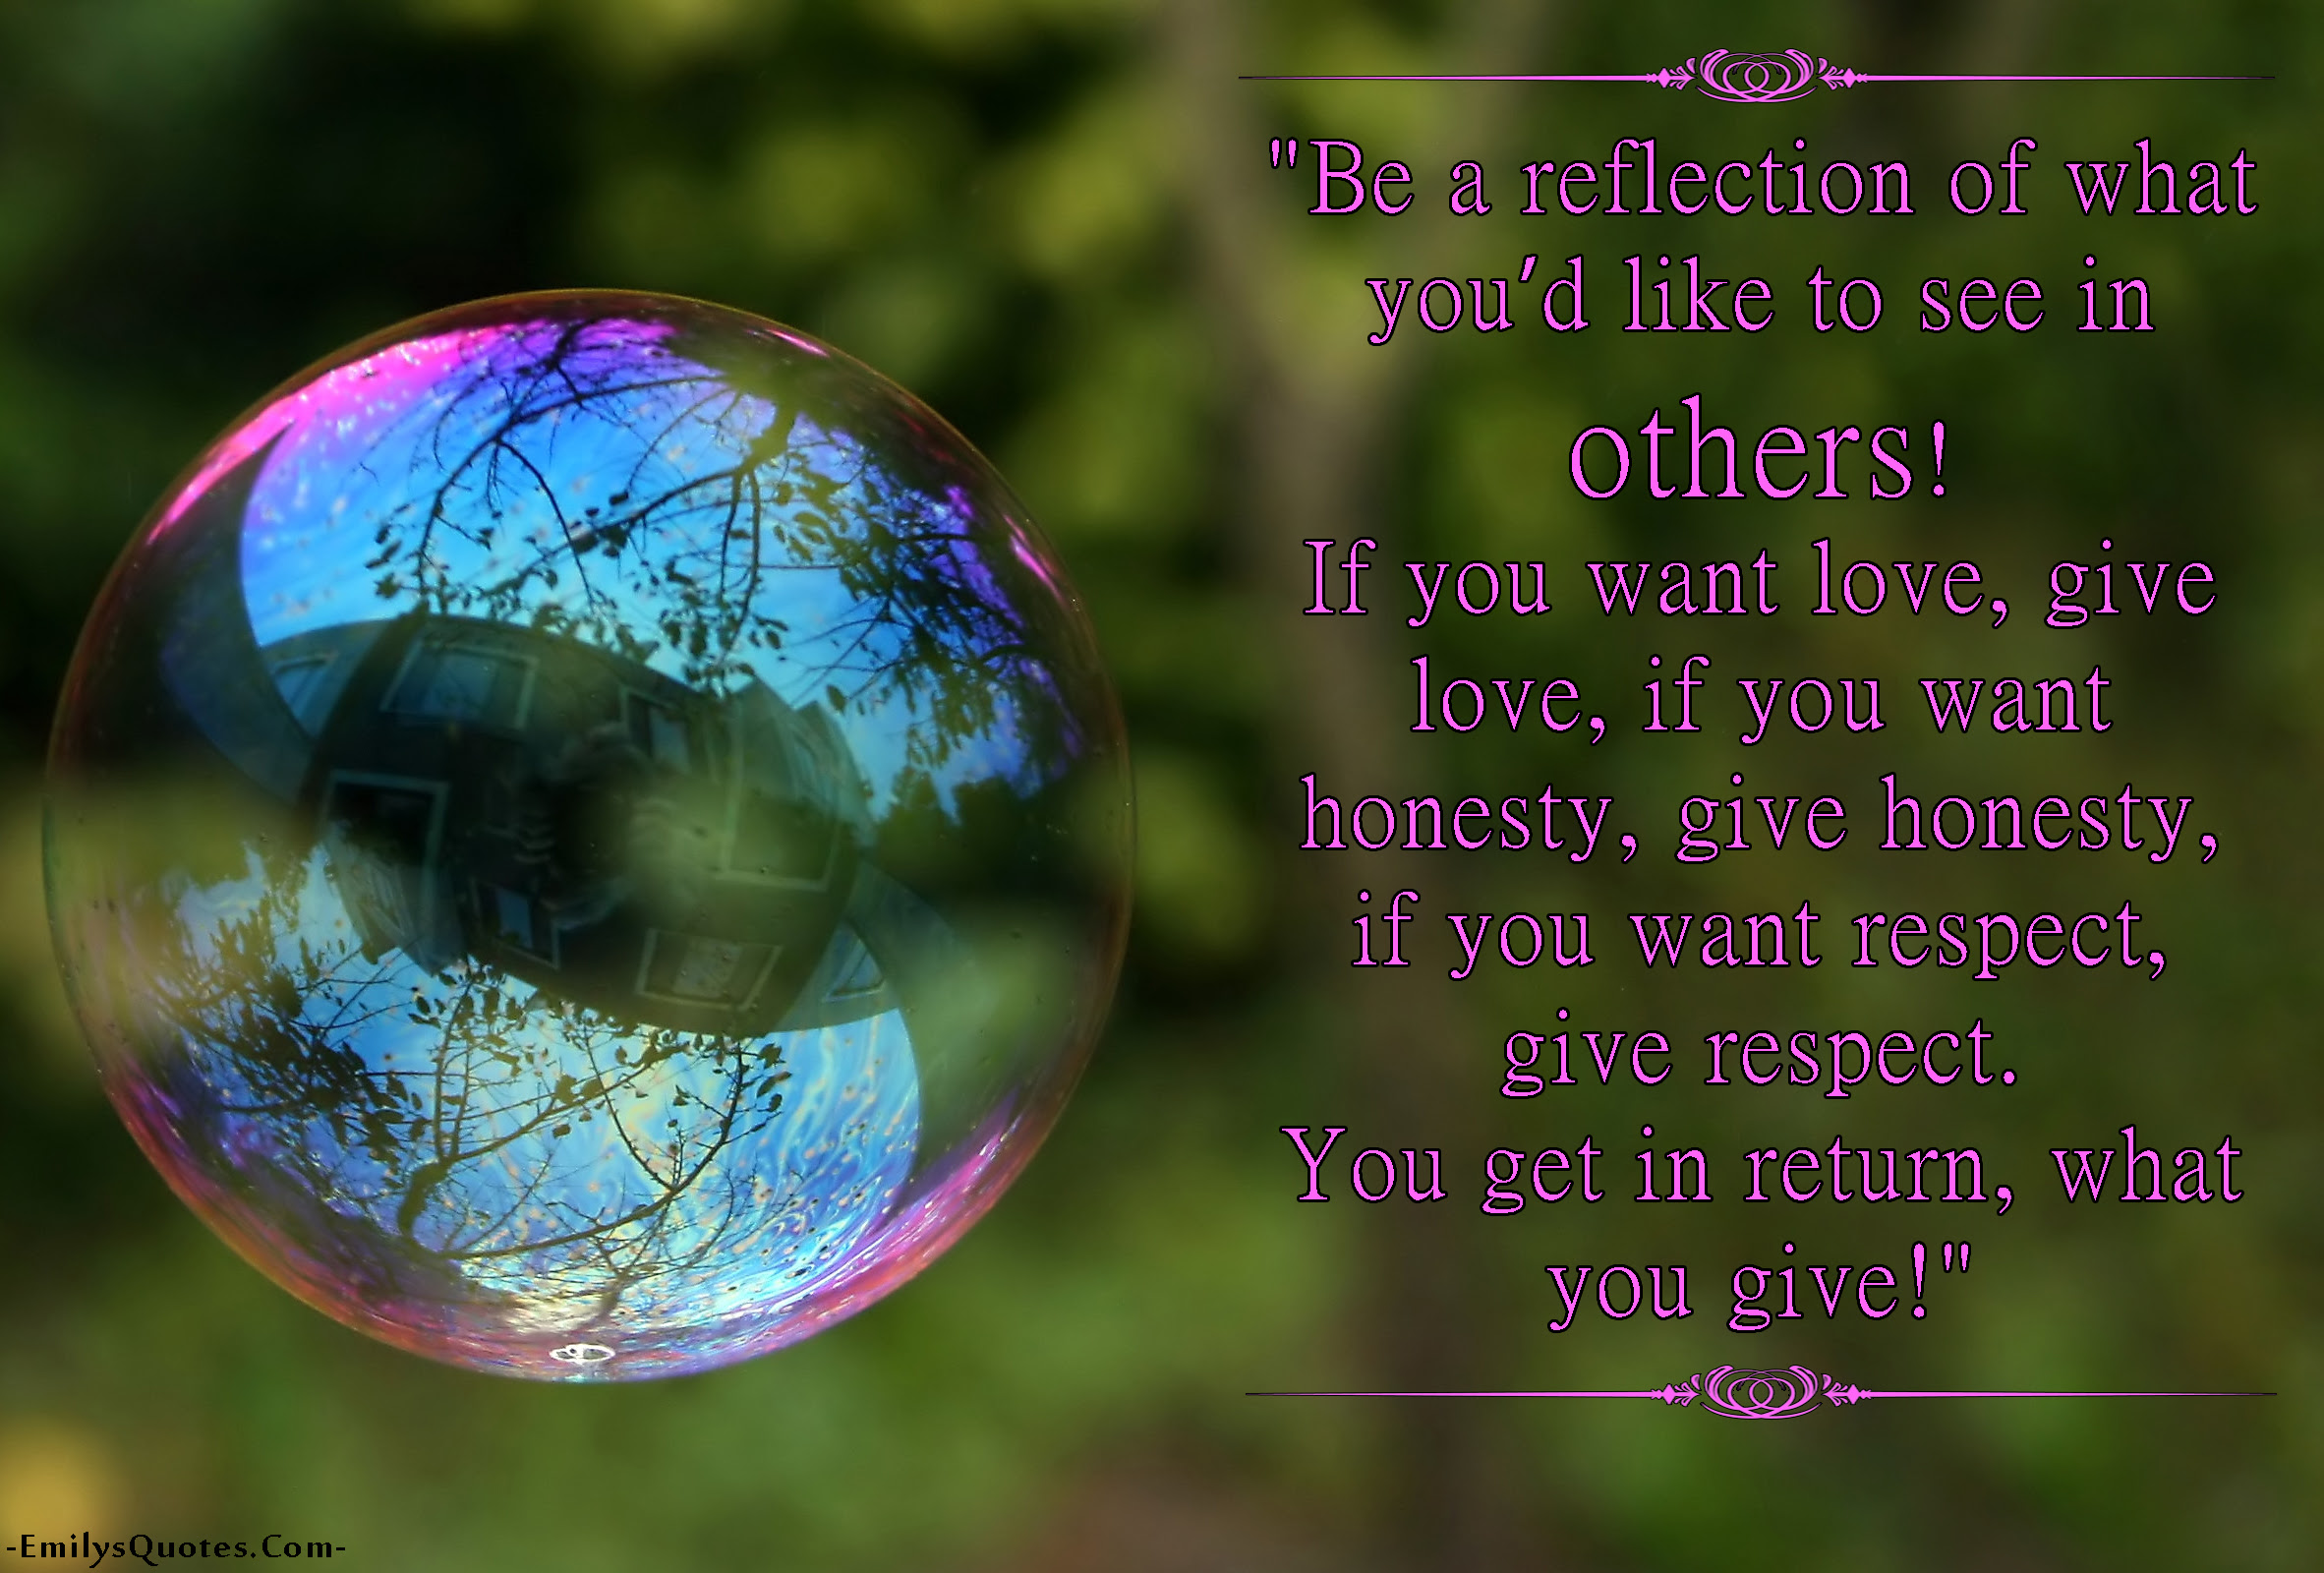 reflection love honesty respect consequences being a ""